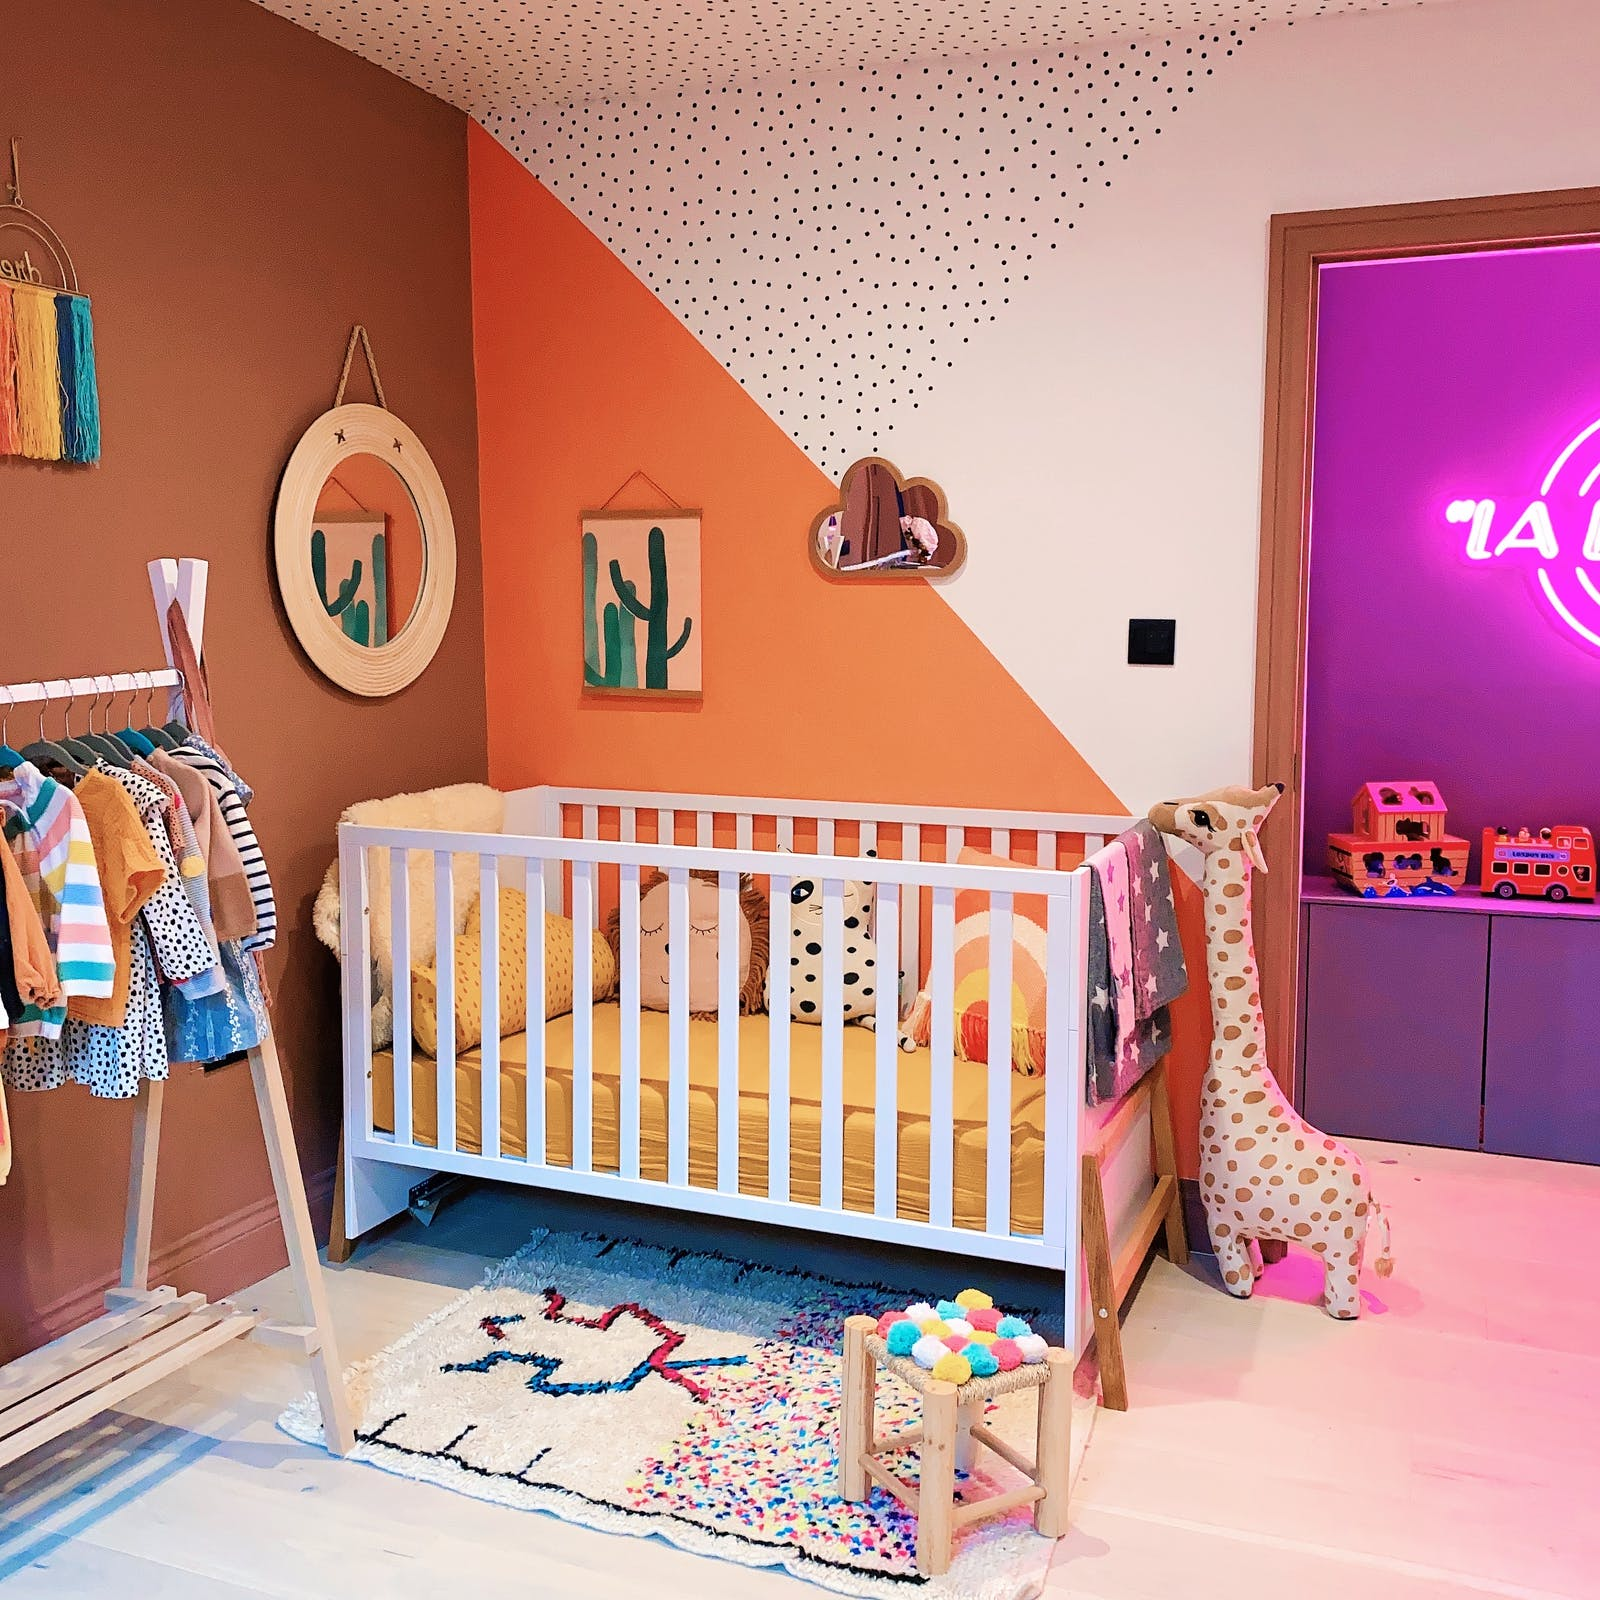 Kids room with polkadot detail and geometric shapes on the wall